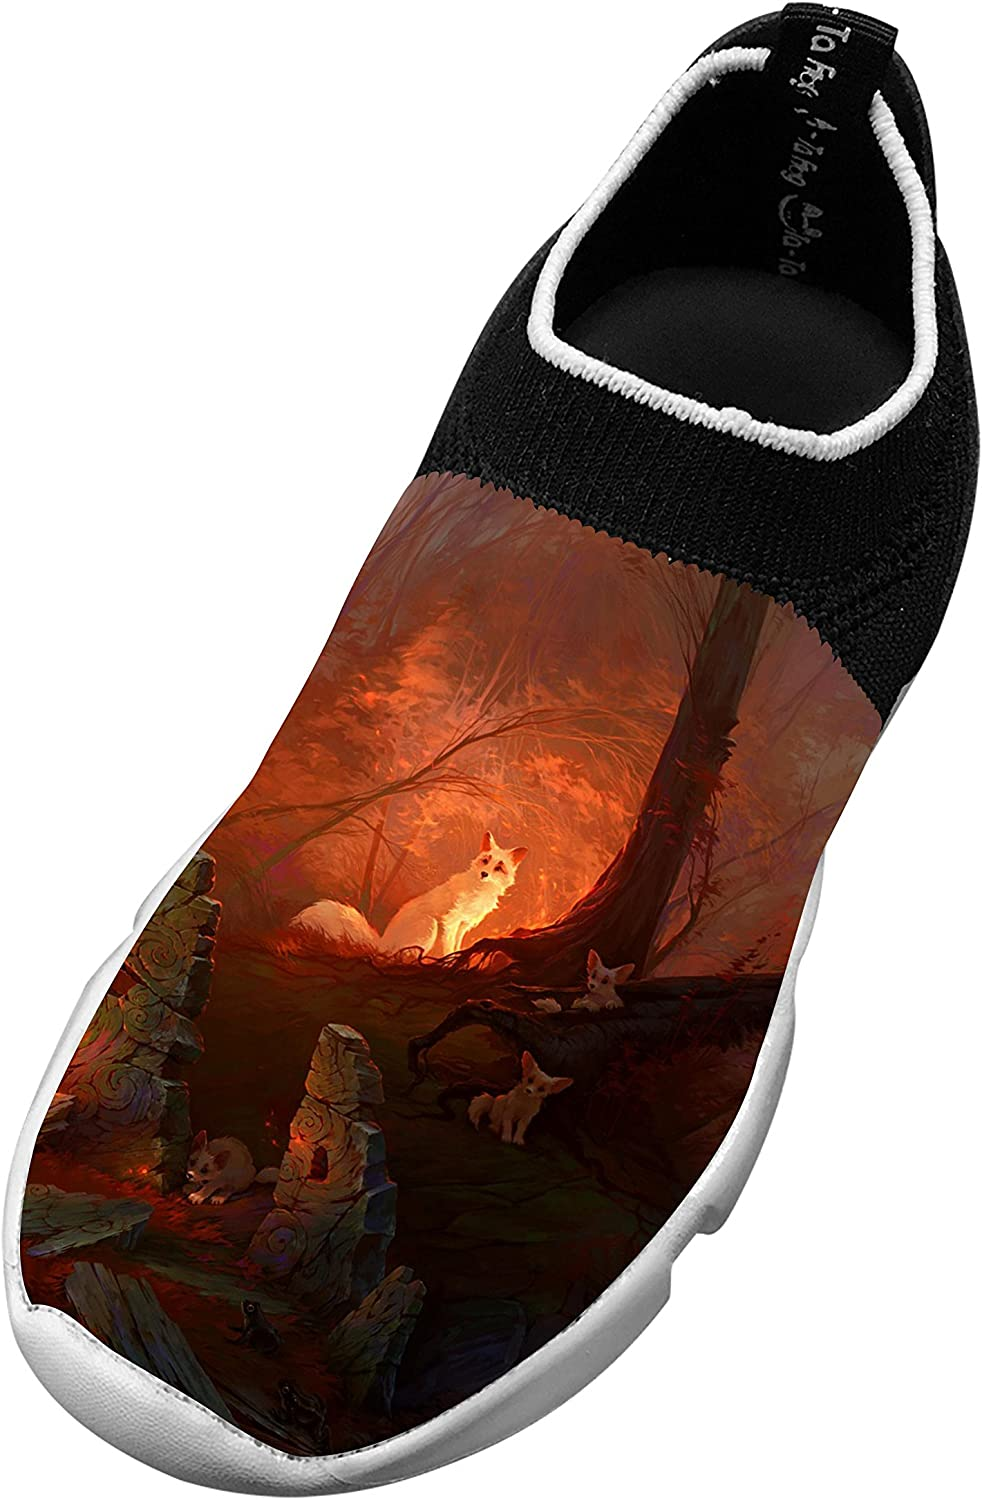 New Awesome Flywire Knitting Sports Shoes 3D Custom Made With Fox Forest For Boys Girls